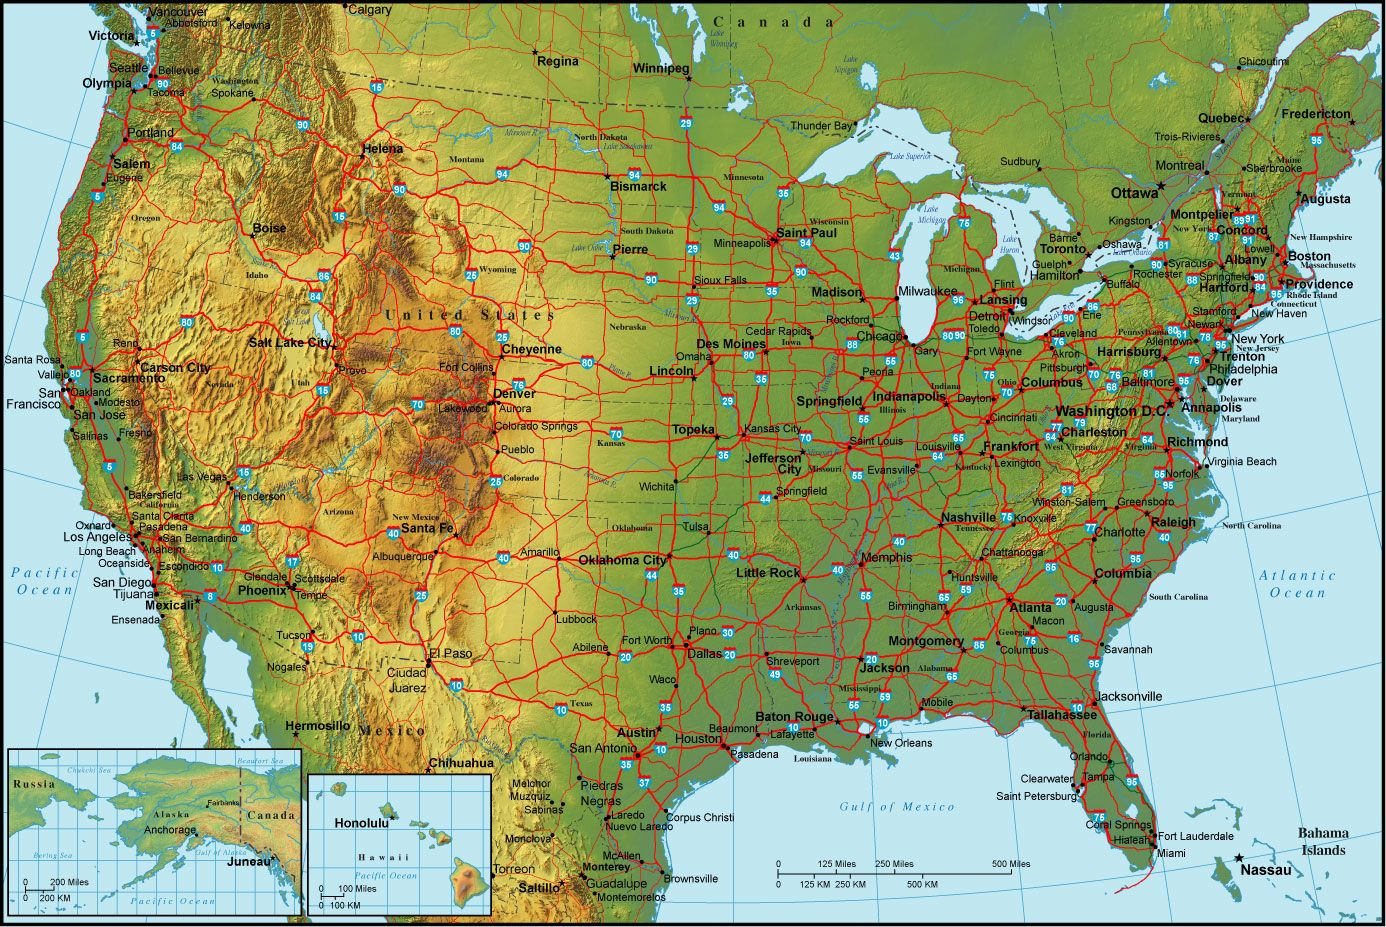 Physical Map Of The United States With Main Geographycal Features - Massachusetts physical map